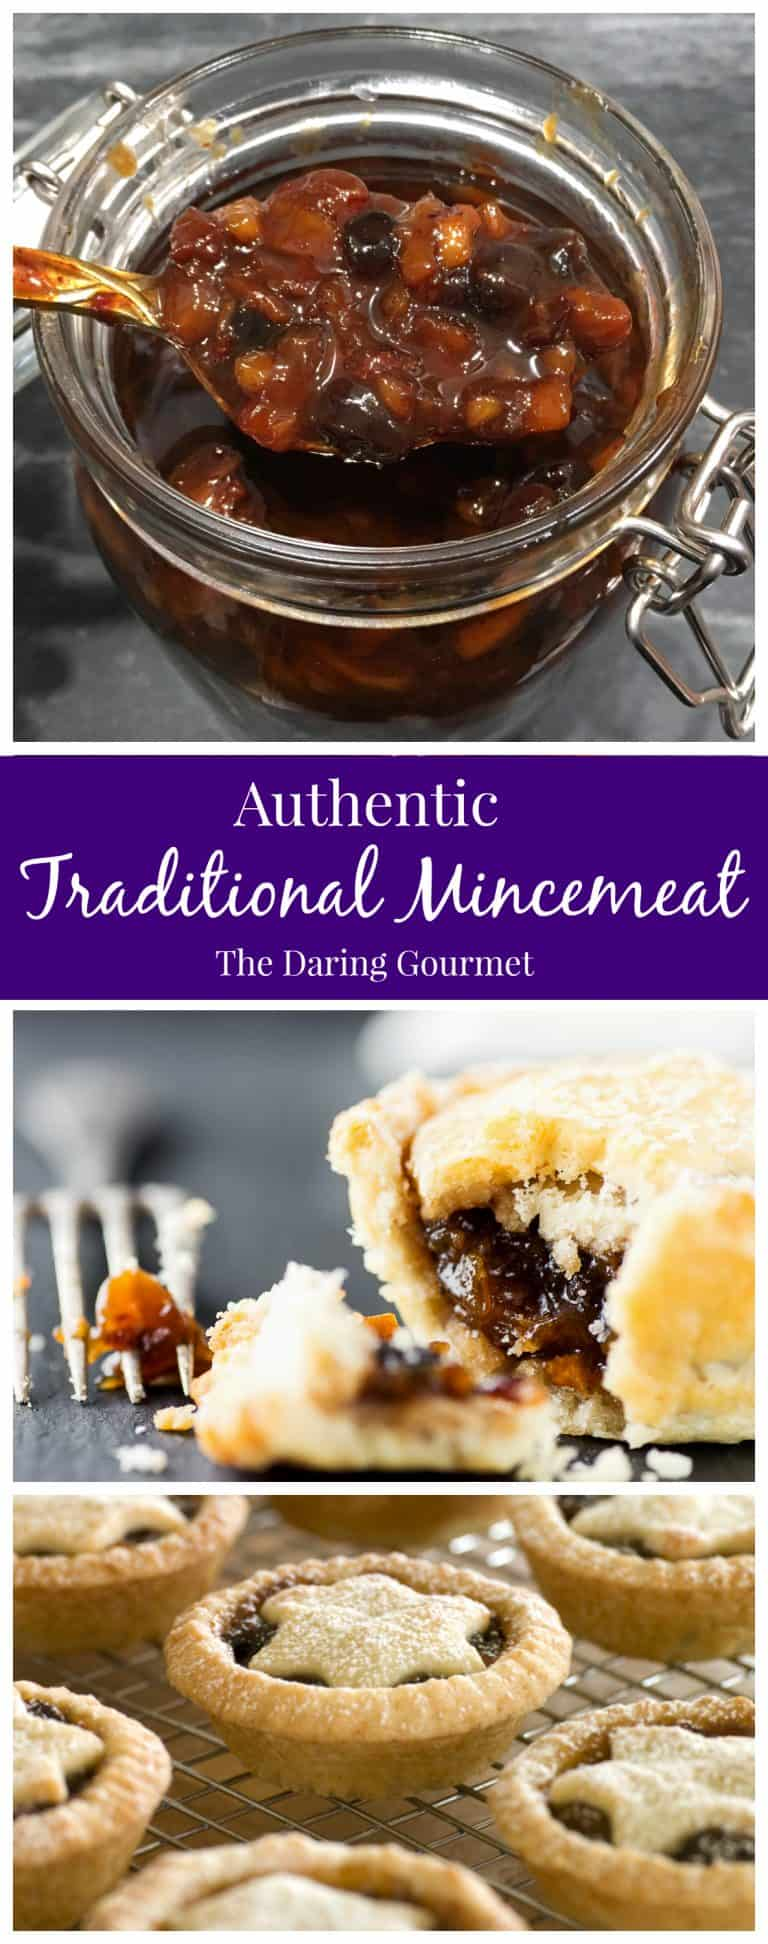 mincemeat recipe authentic traditional best